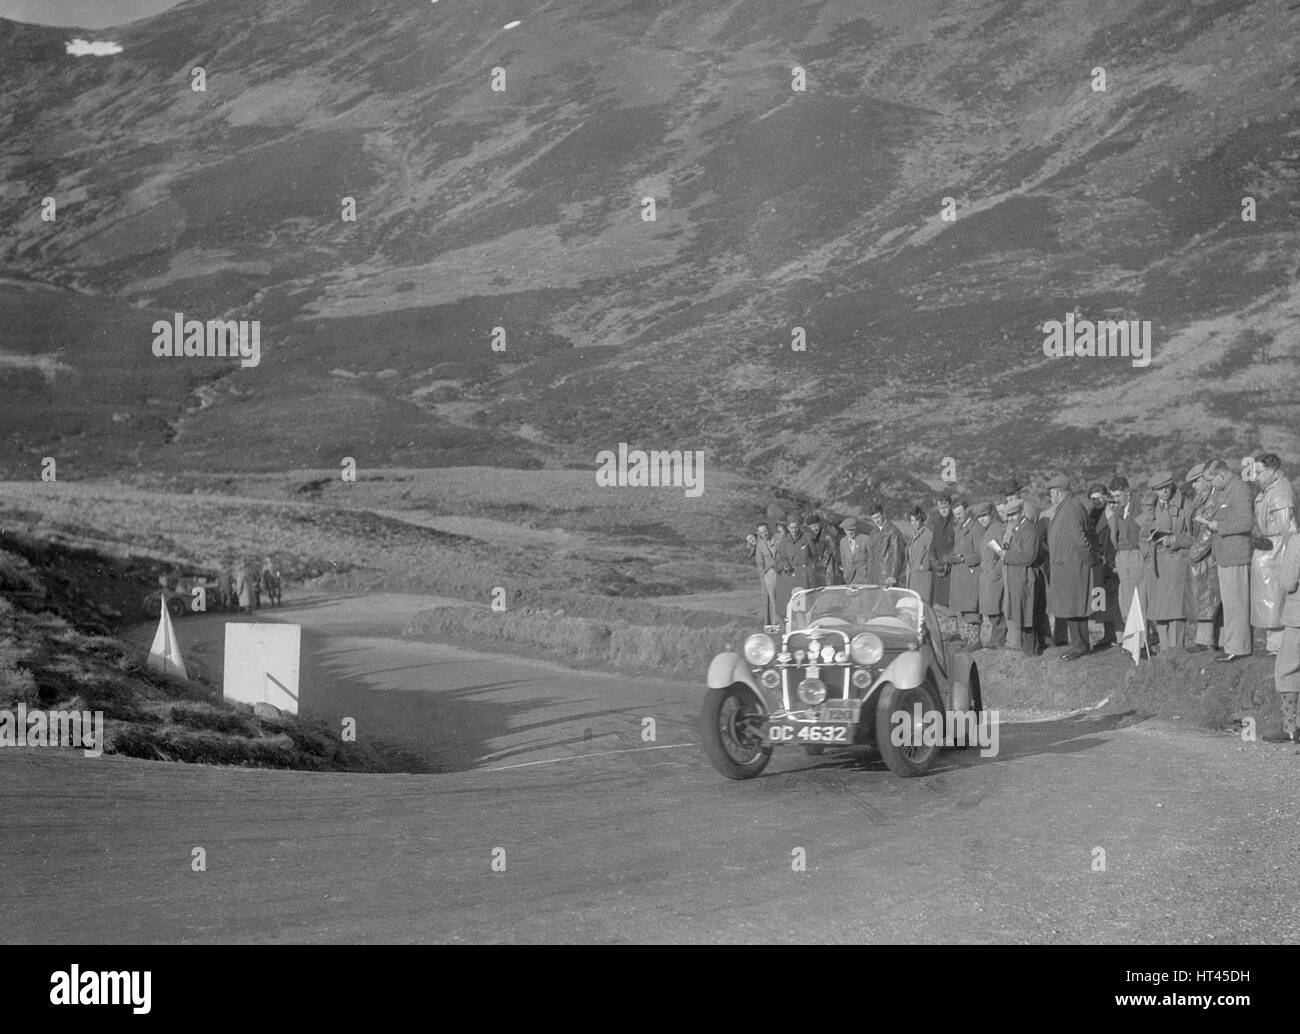 Singer Le Mans of Archie Langley at the RSAC Scottish Rally, Devil's Elbow, Glenshee, 1934. Artist: Bill Brunell. - Stock Image